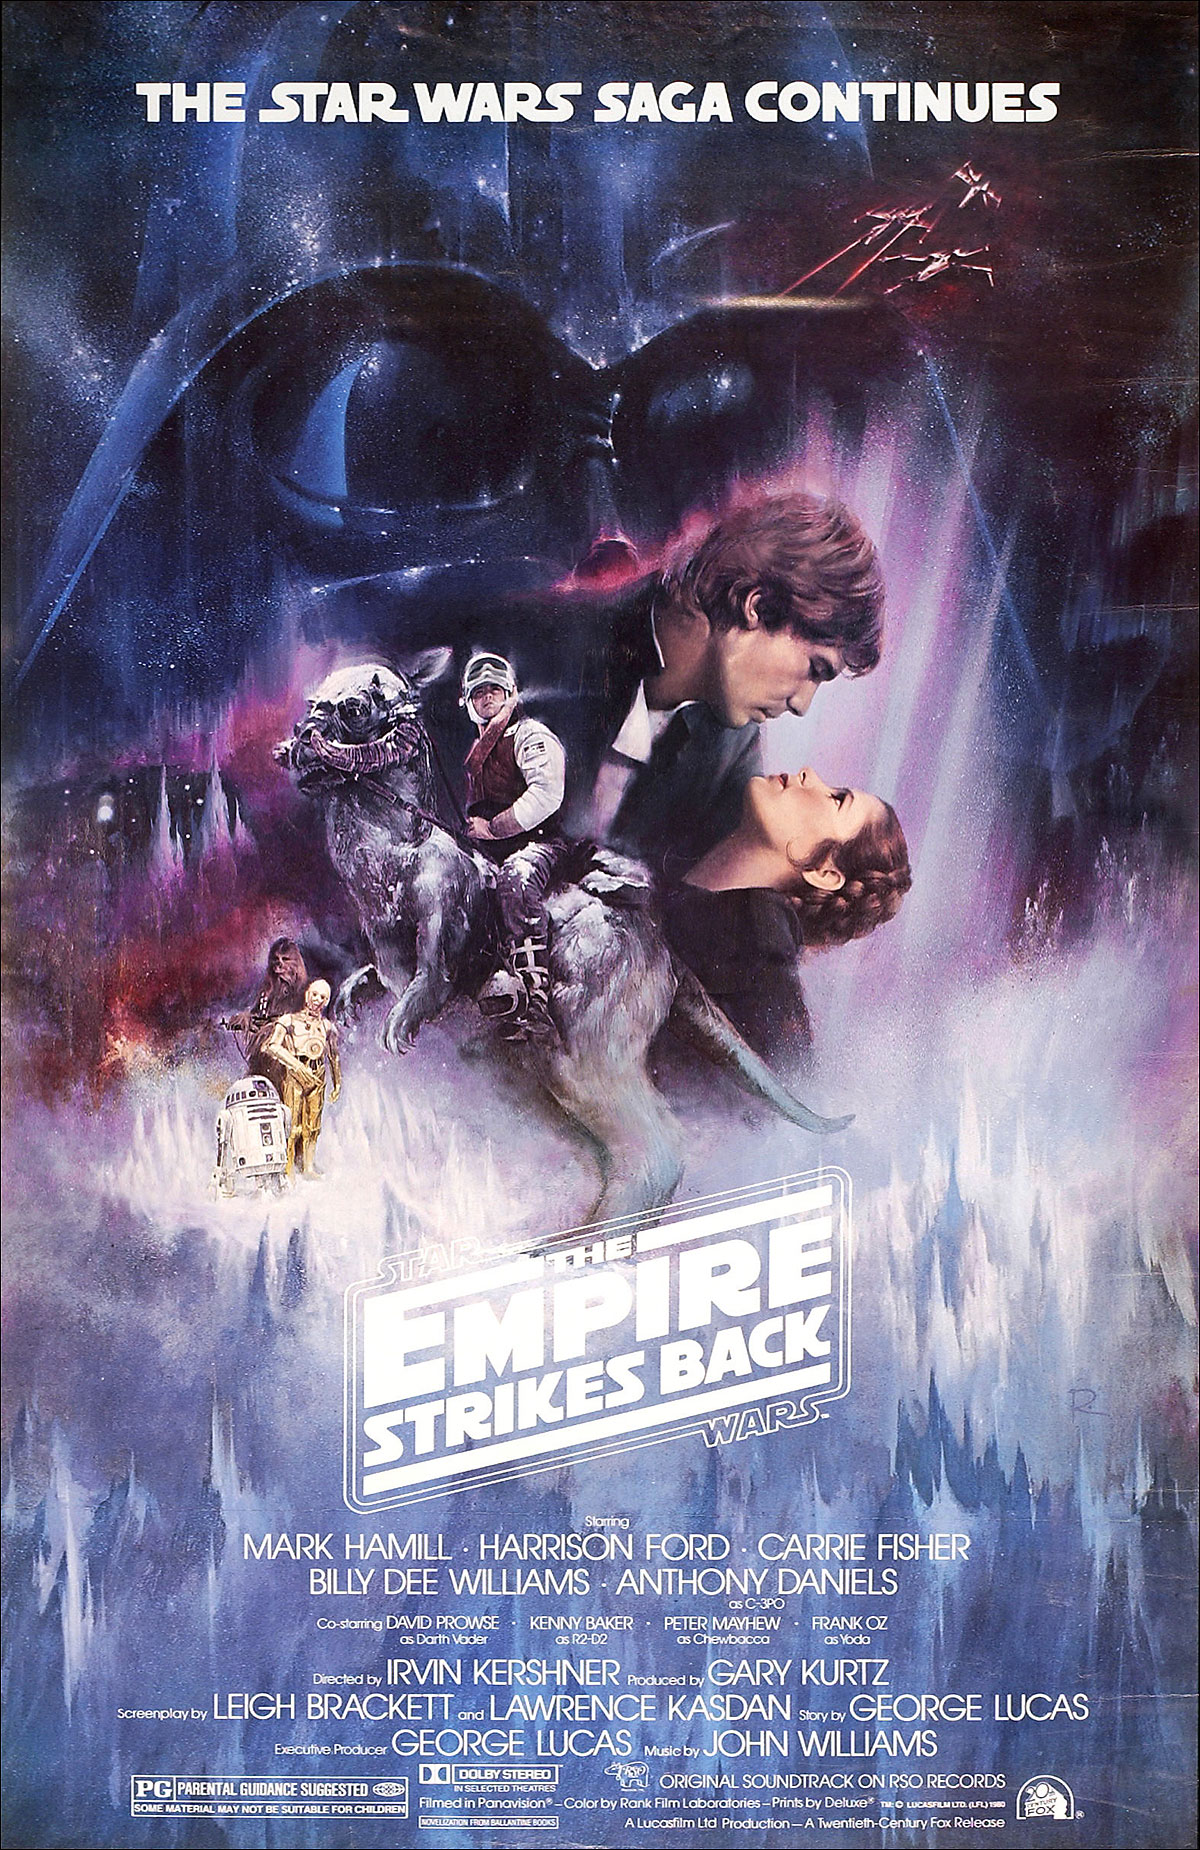 Marketing for Episode VIII The-Empire-Strikes-Back